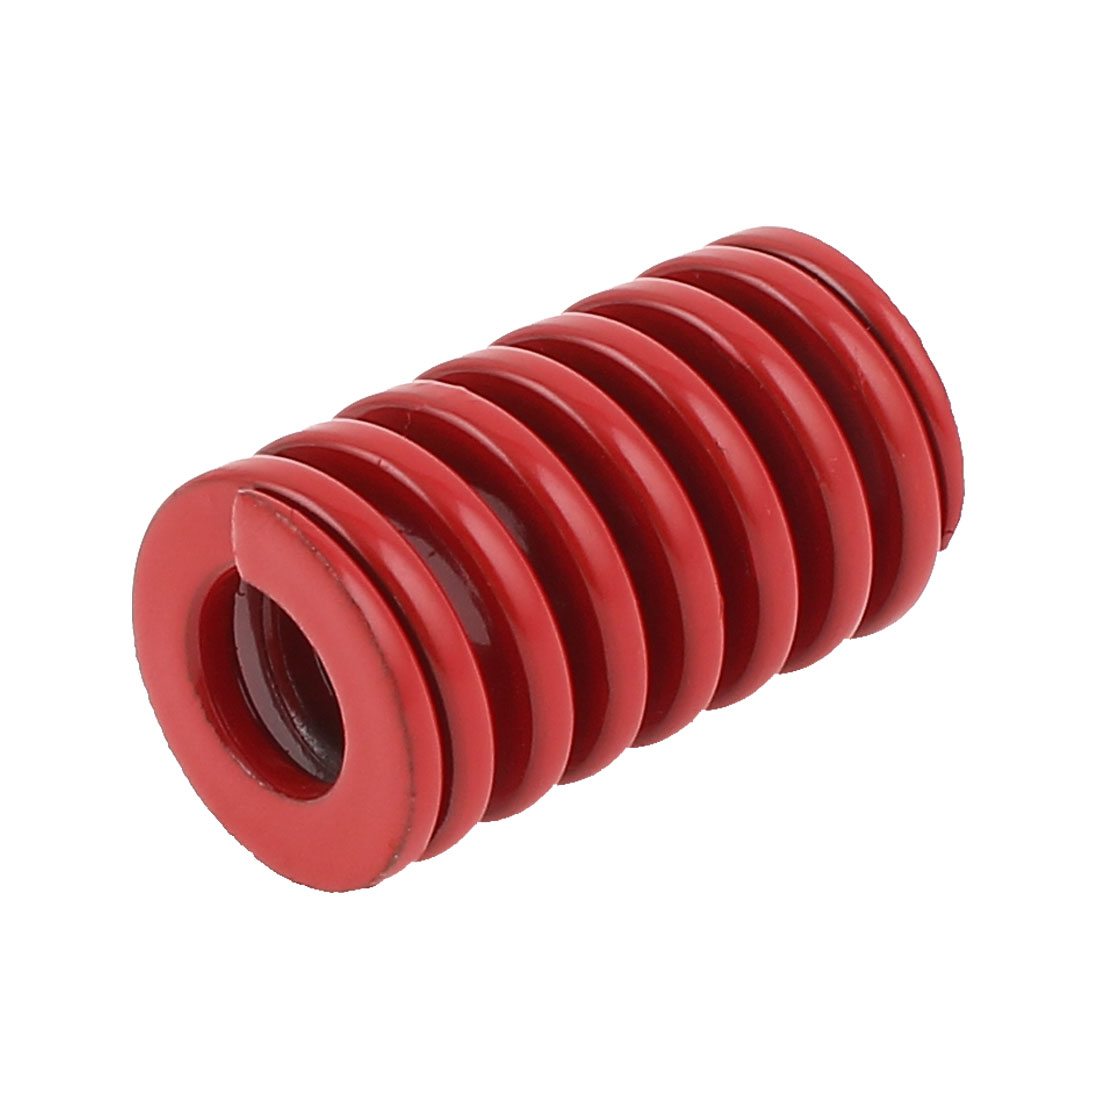 Red Chromium Alloy Steel Section Mould Die Spring 18mm x 9mm x 30mm